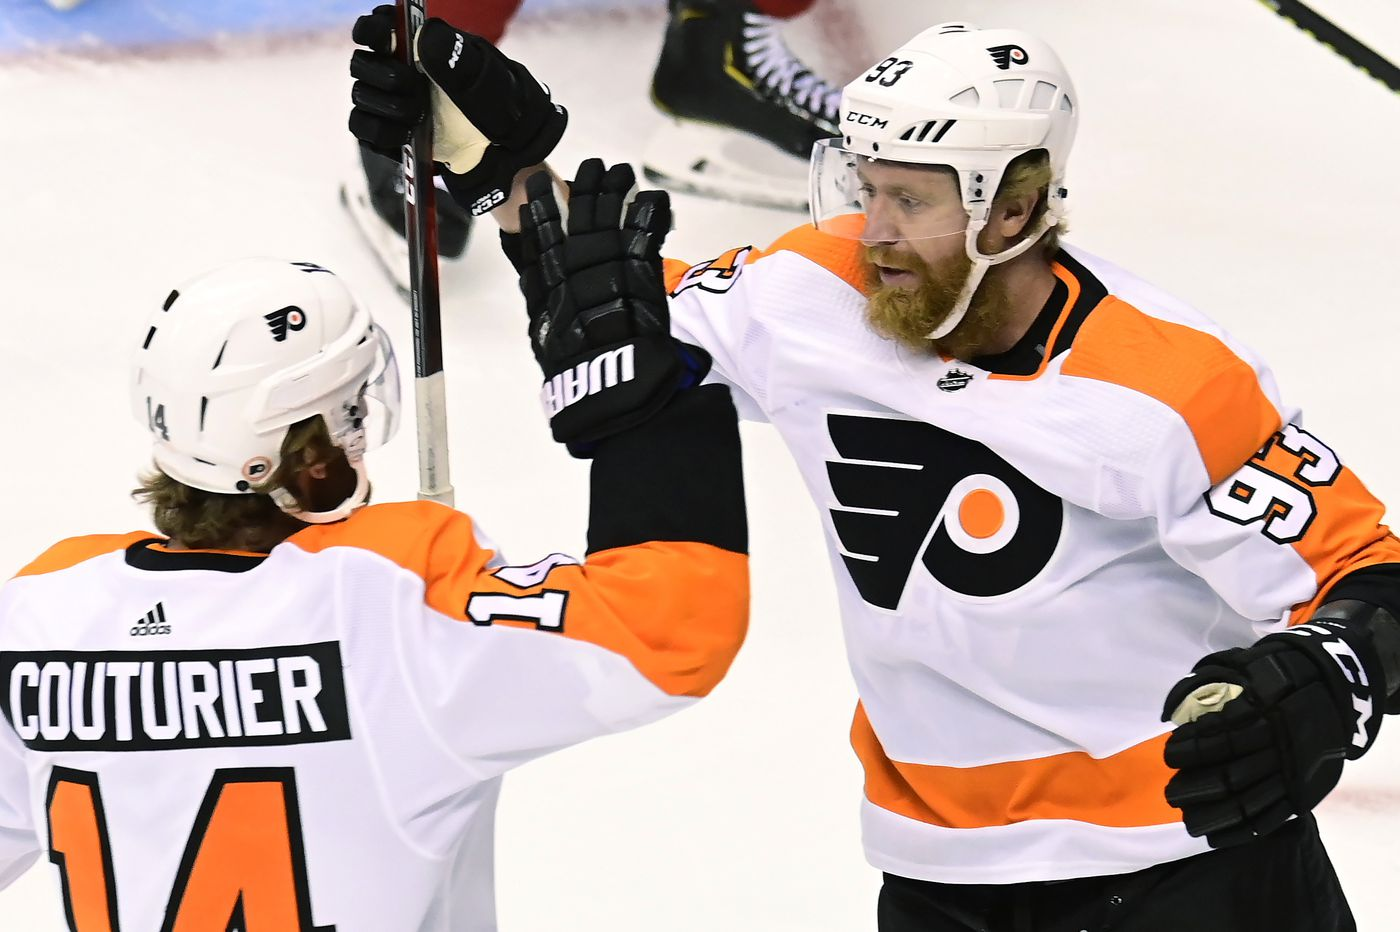 Flyers winning with defense and goaltending, but top two lines need to find scoring touch